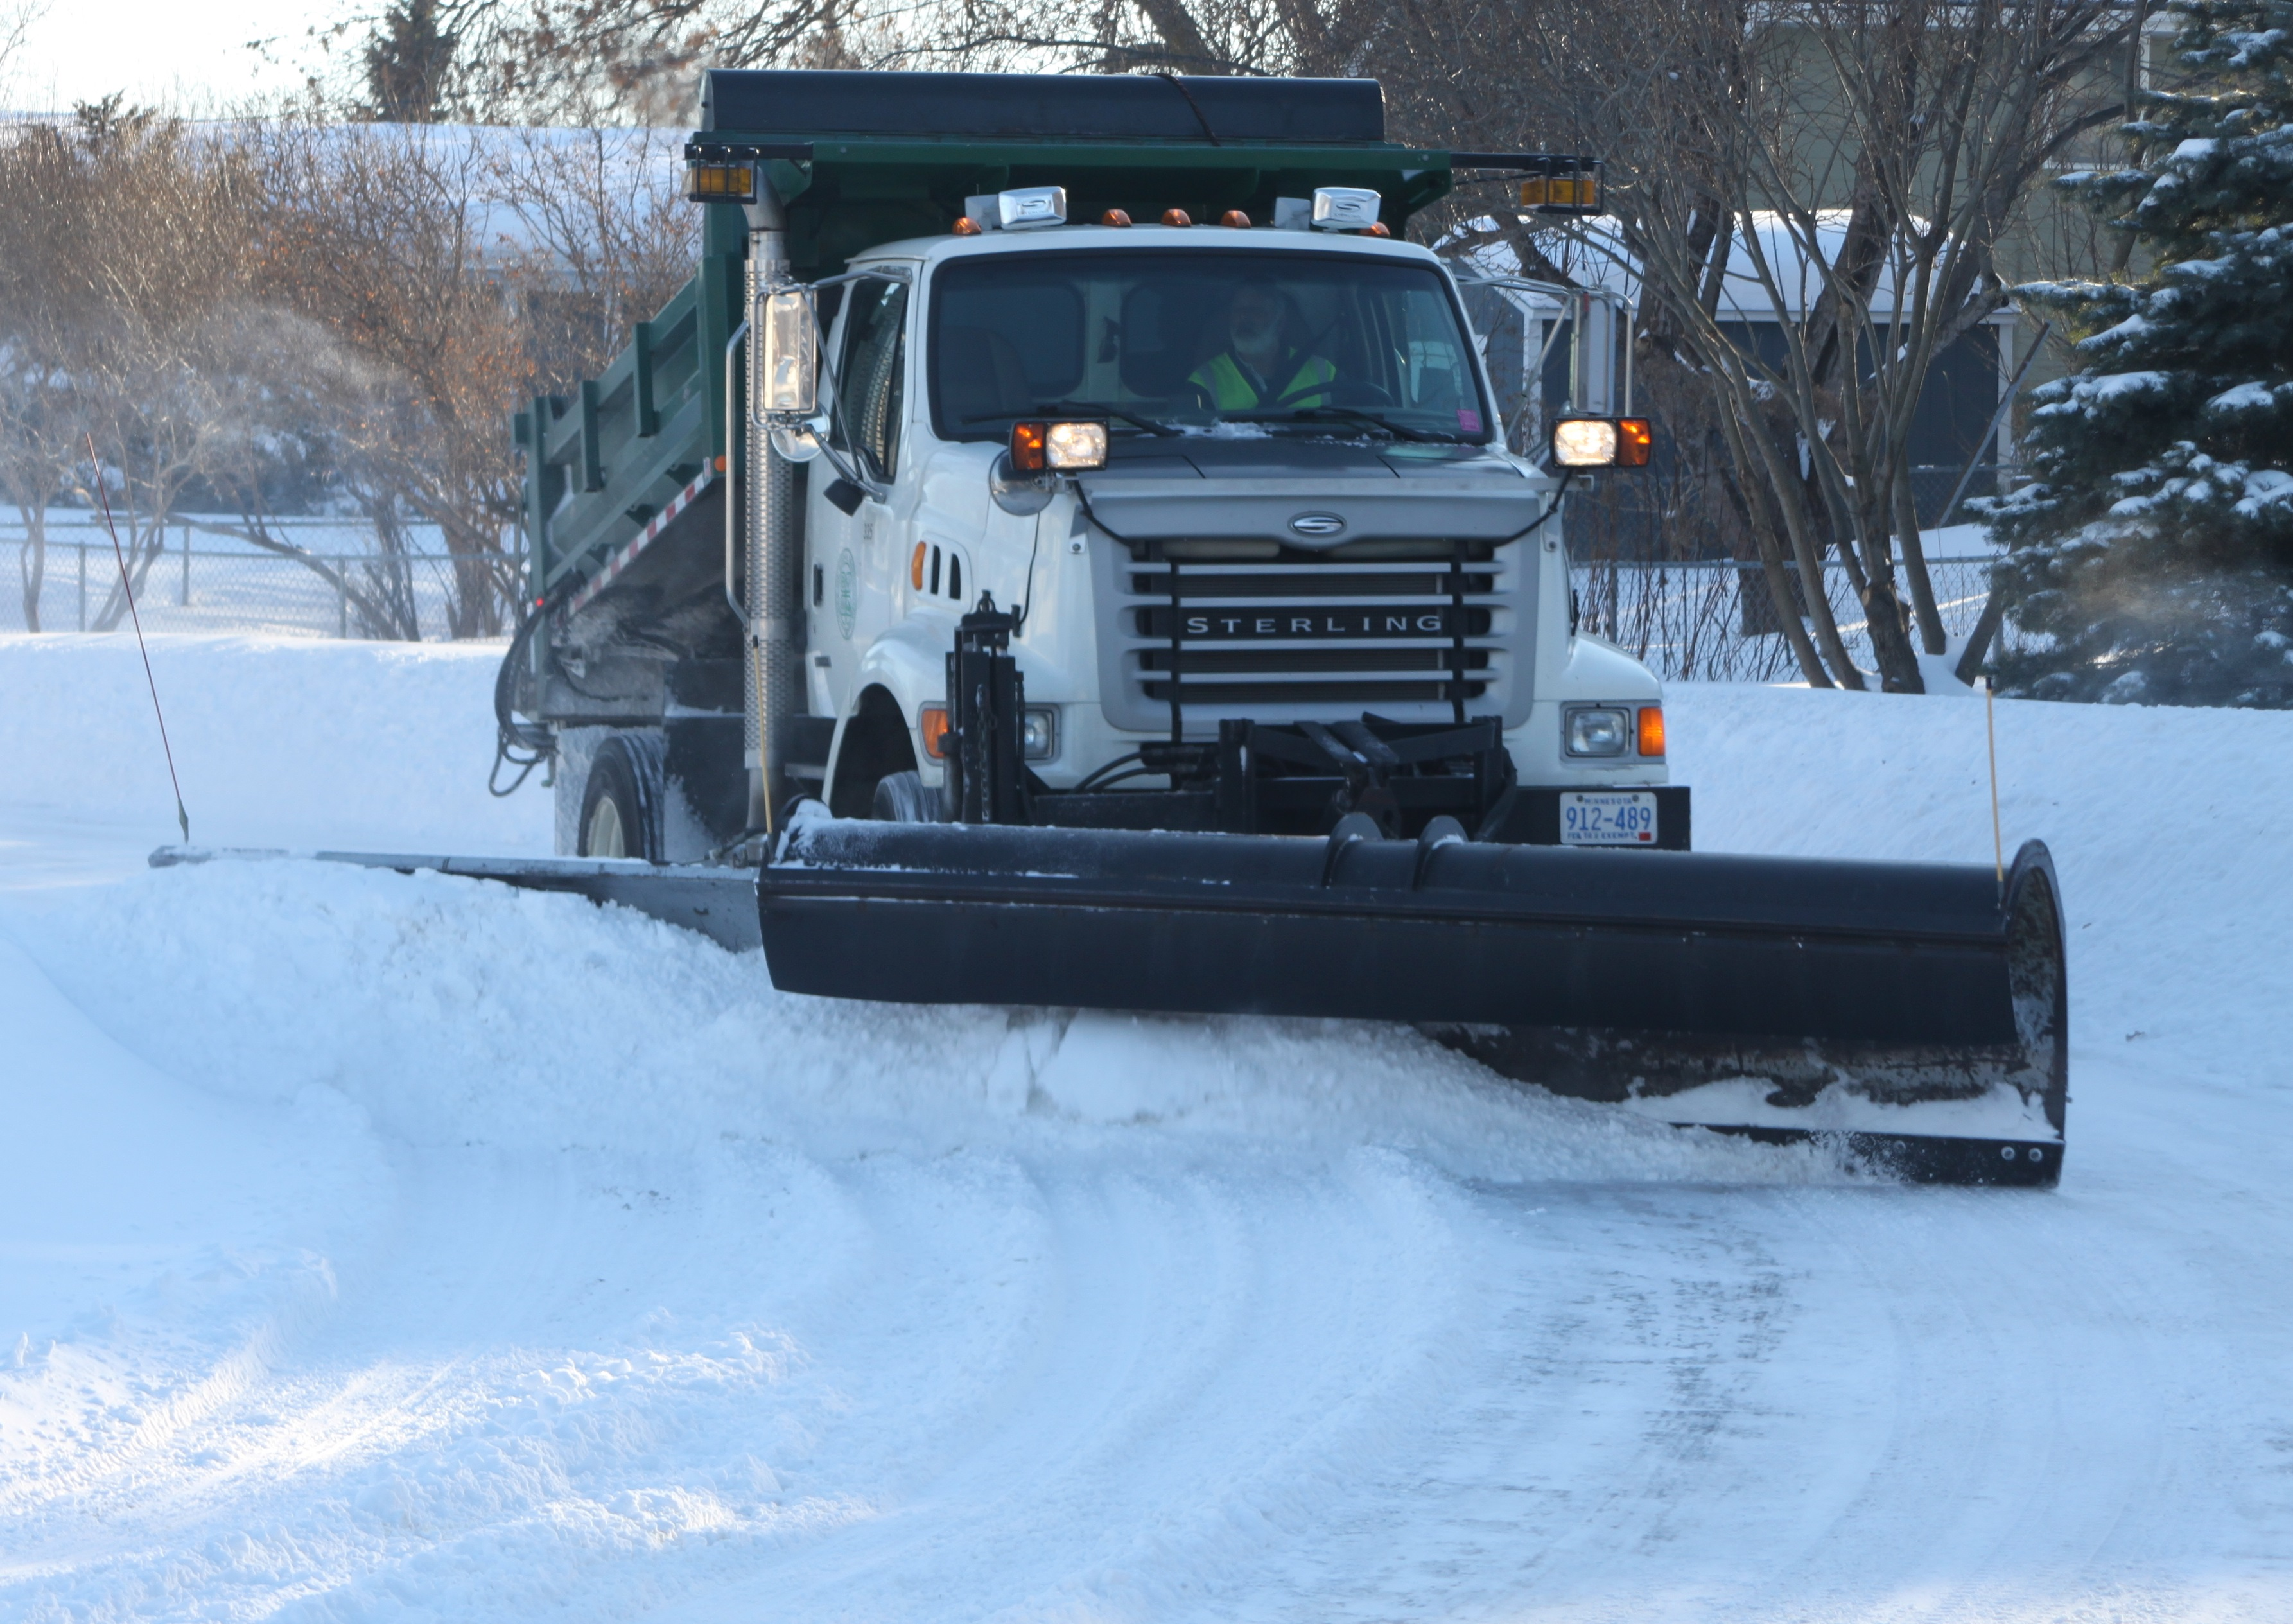 Protect Your Property From Snow Plow Damage - Featured Image